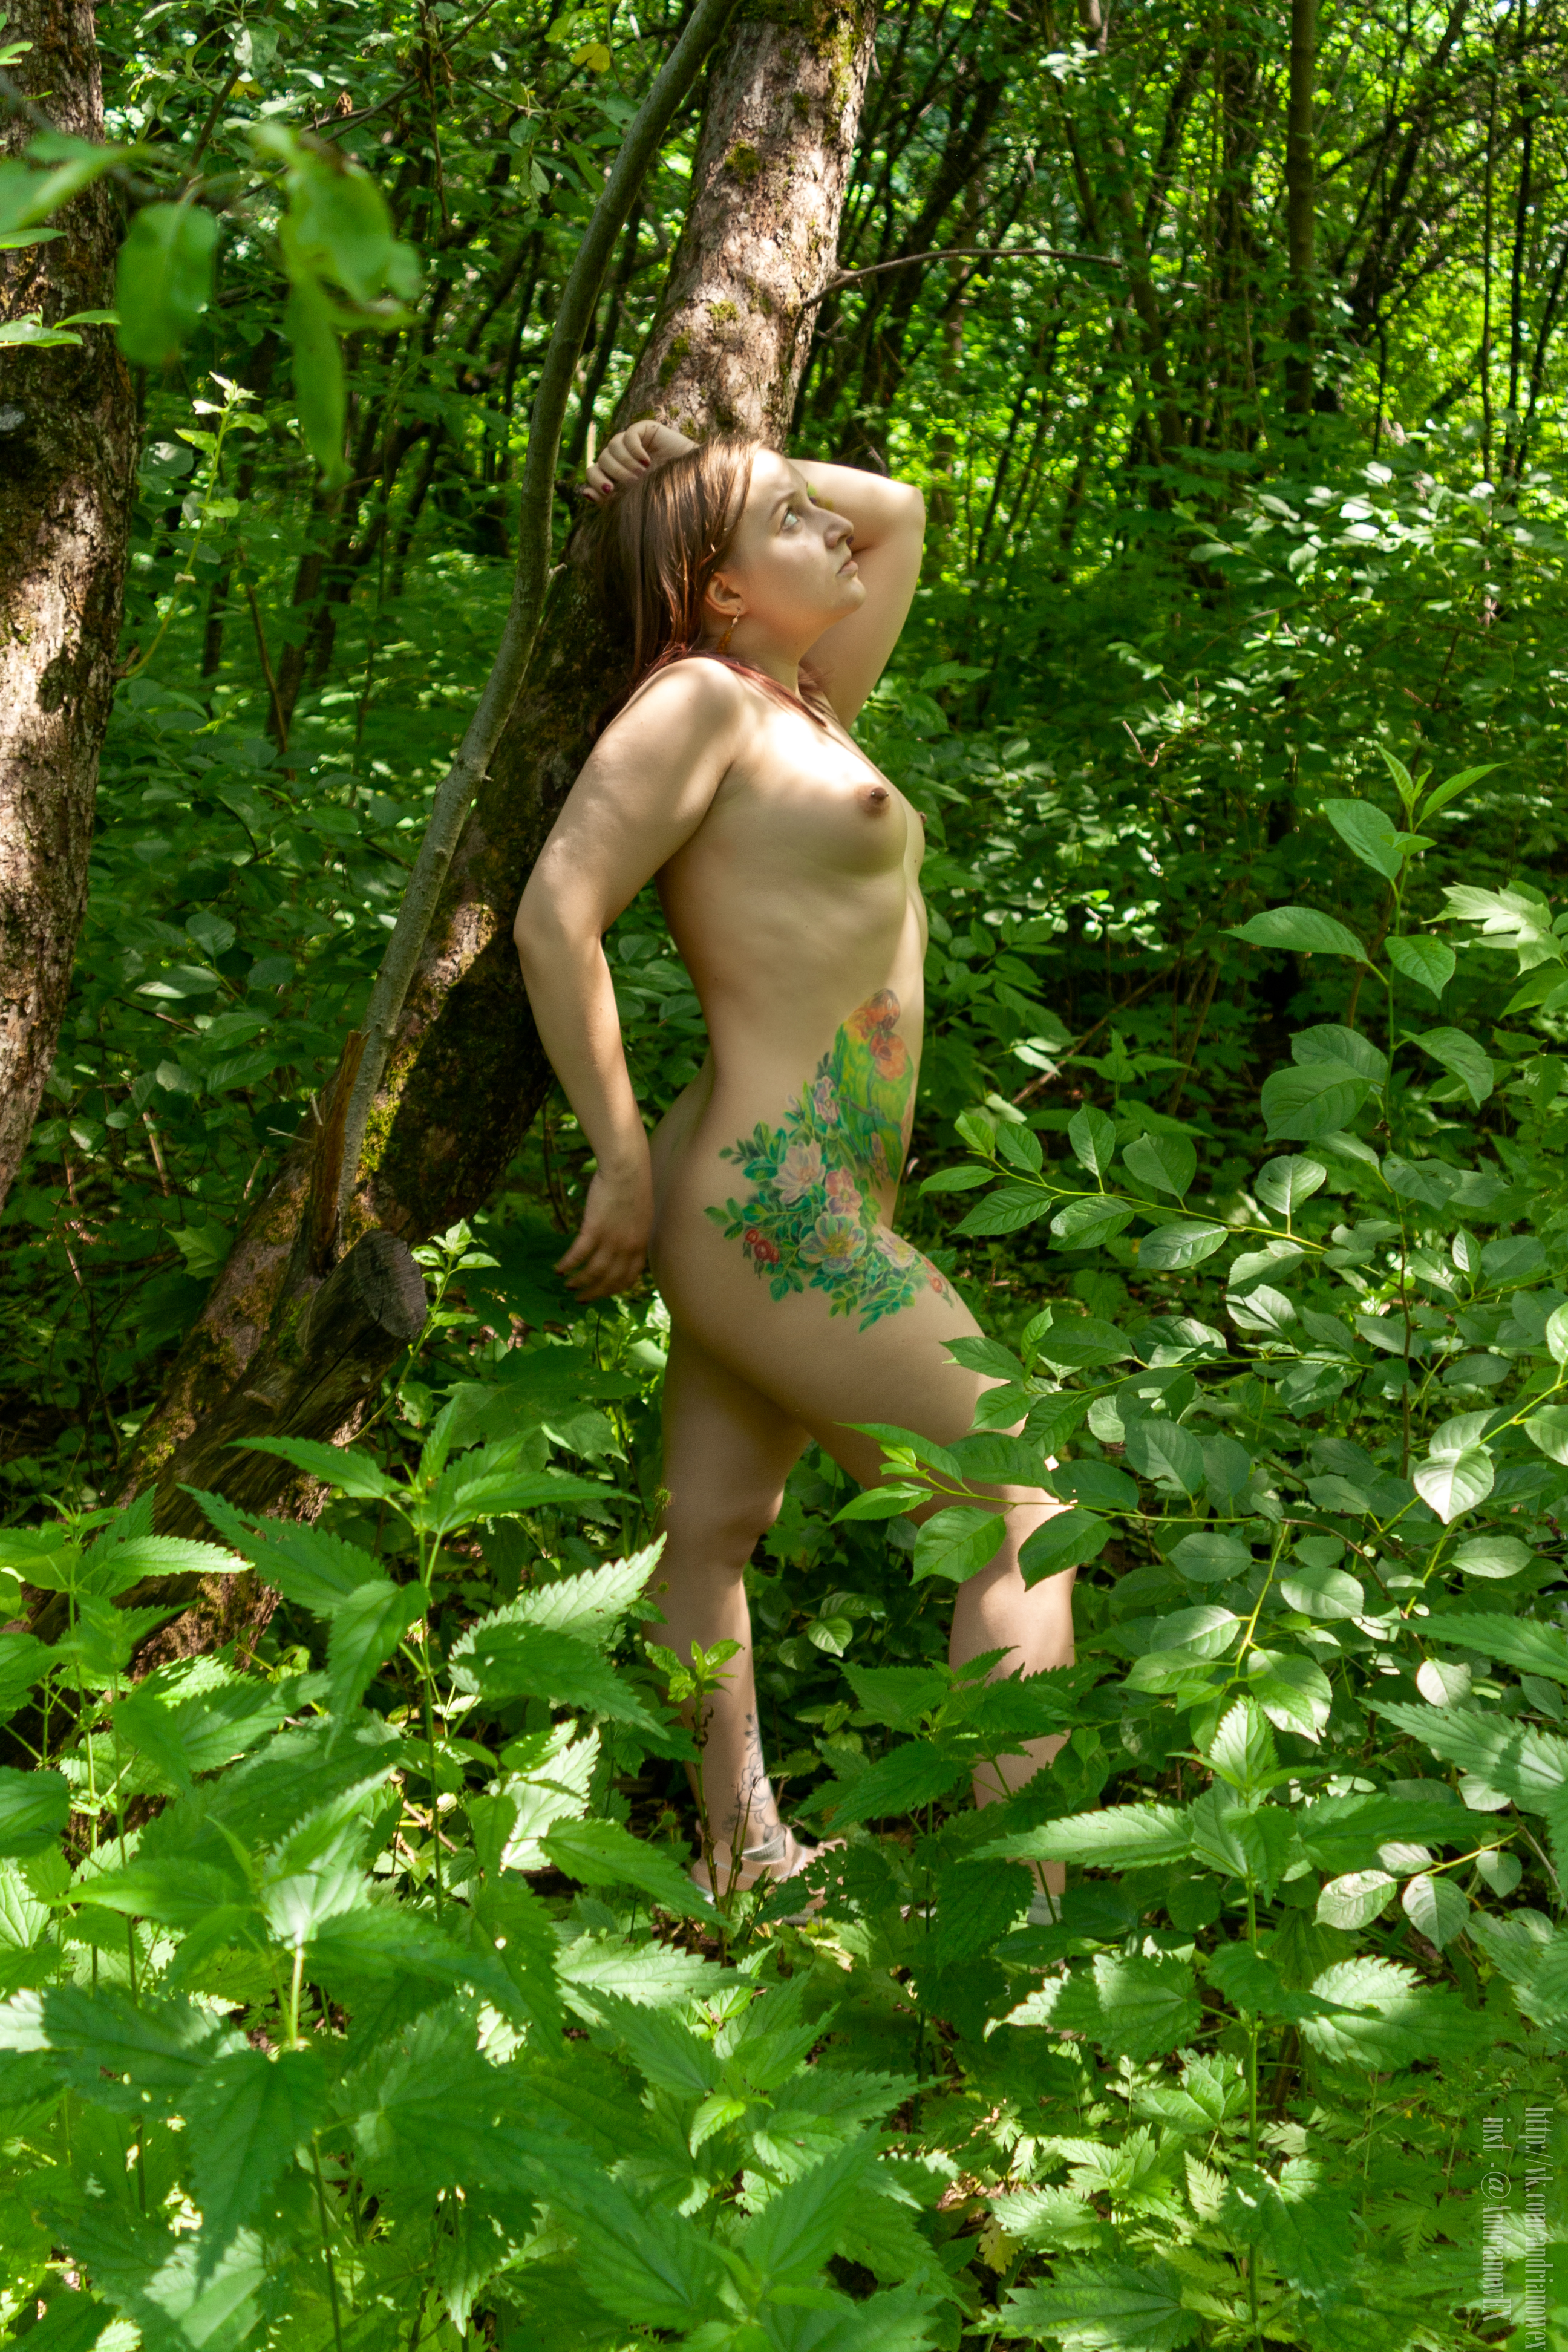 Fear, nature, naked.